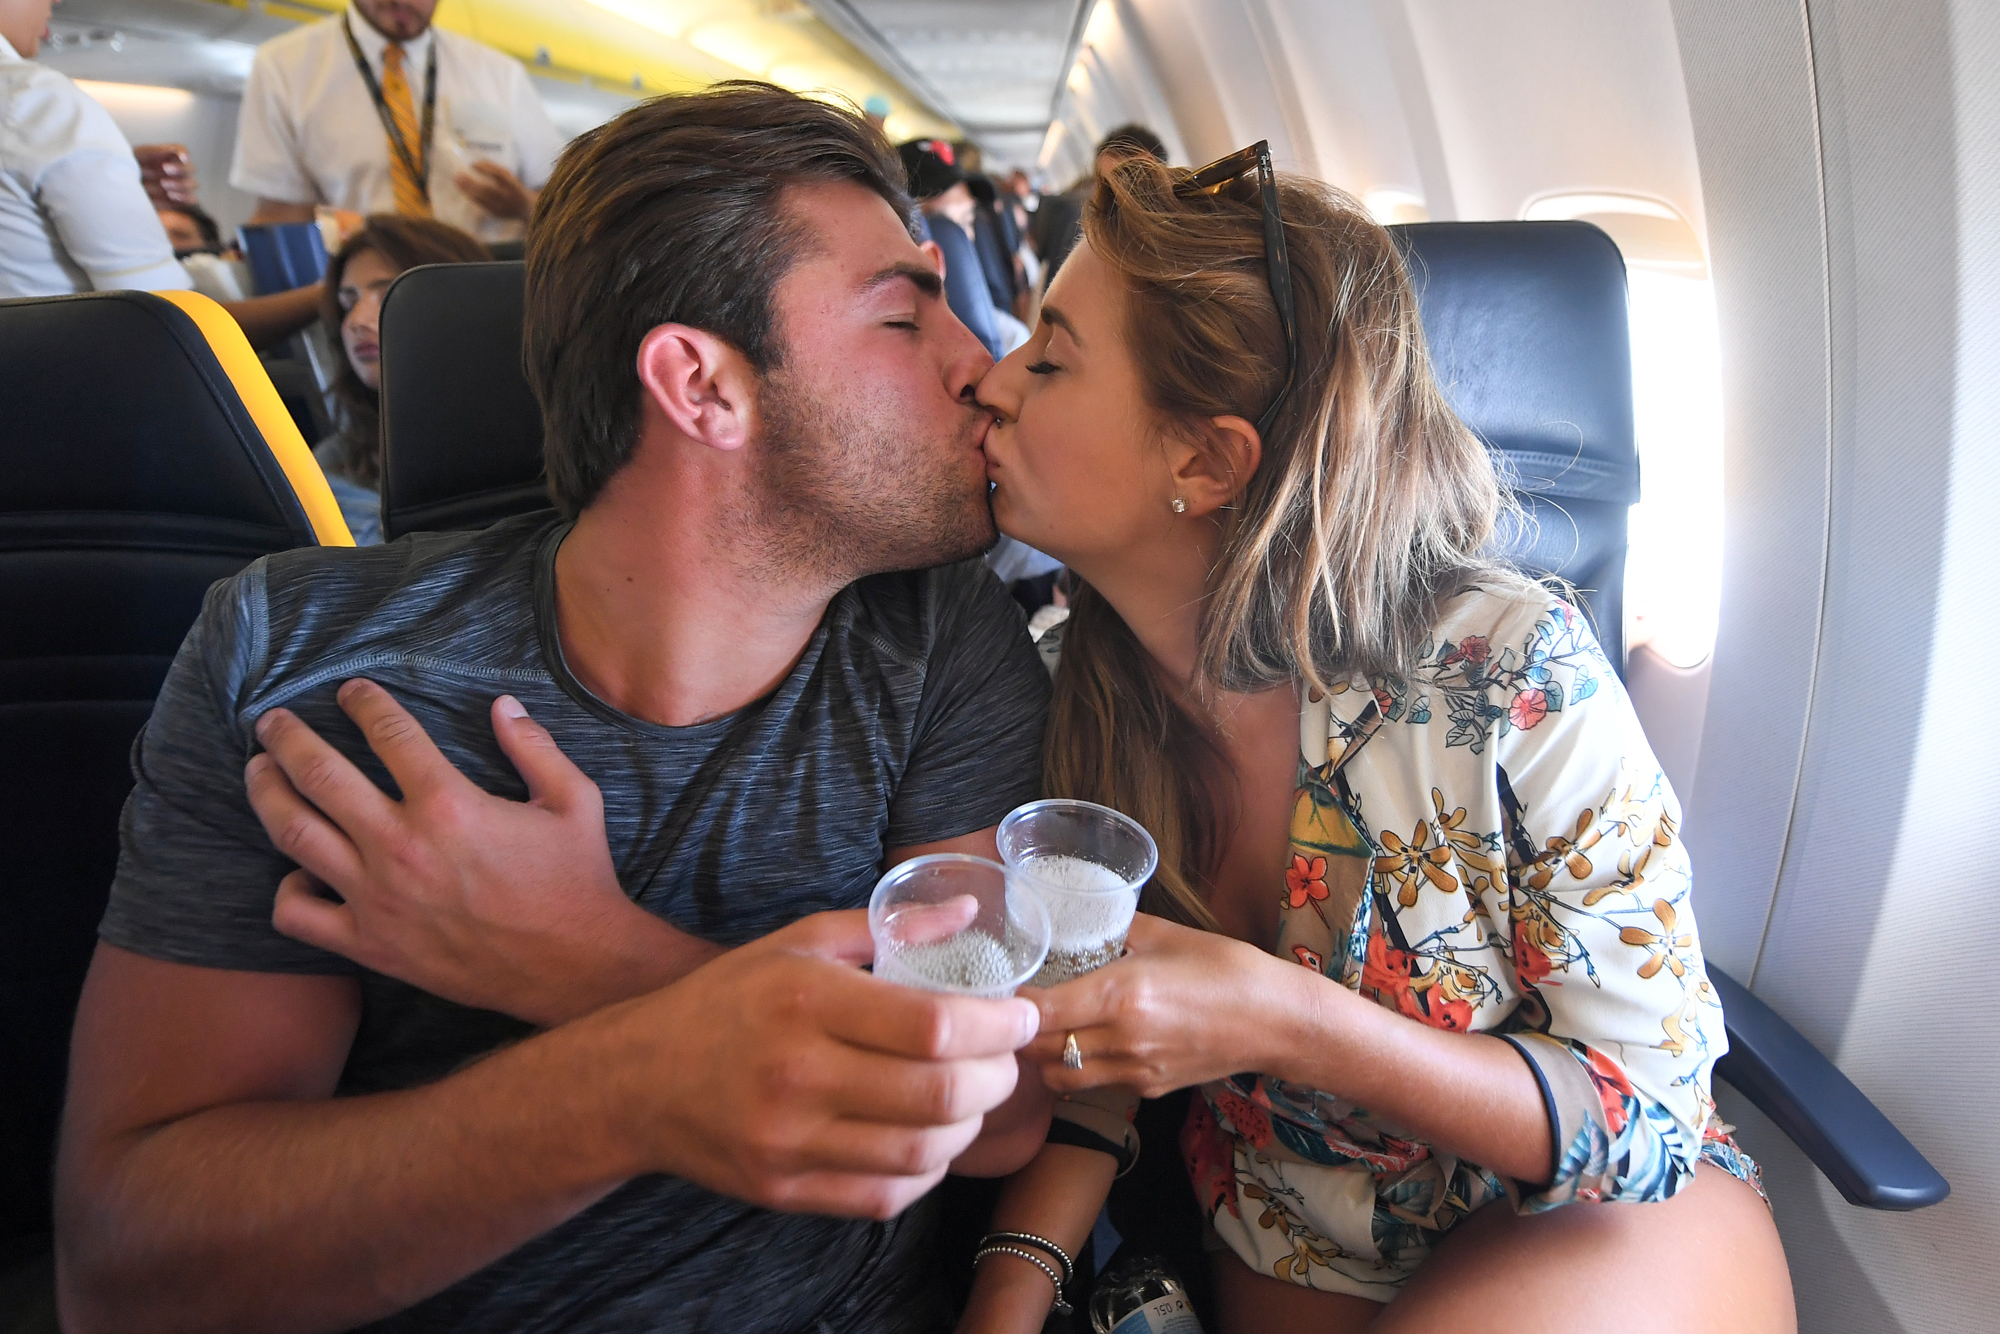 Dani Dyer and Jack Fincham with champagne on the flight from Palma de Mallorca to London